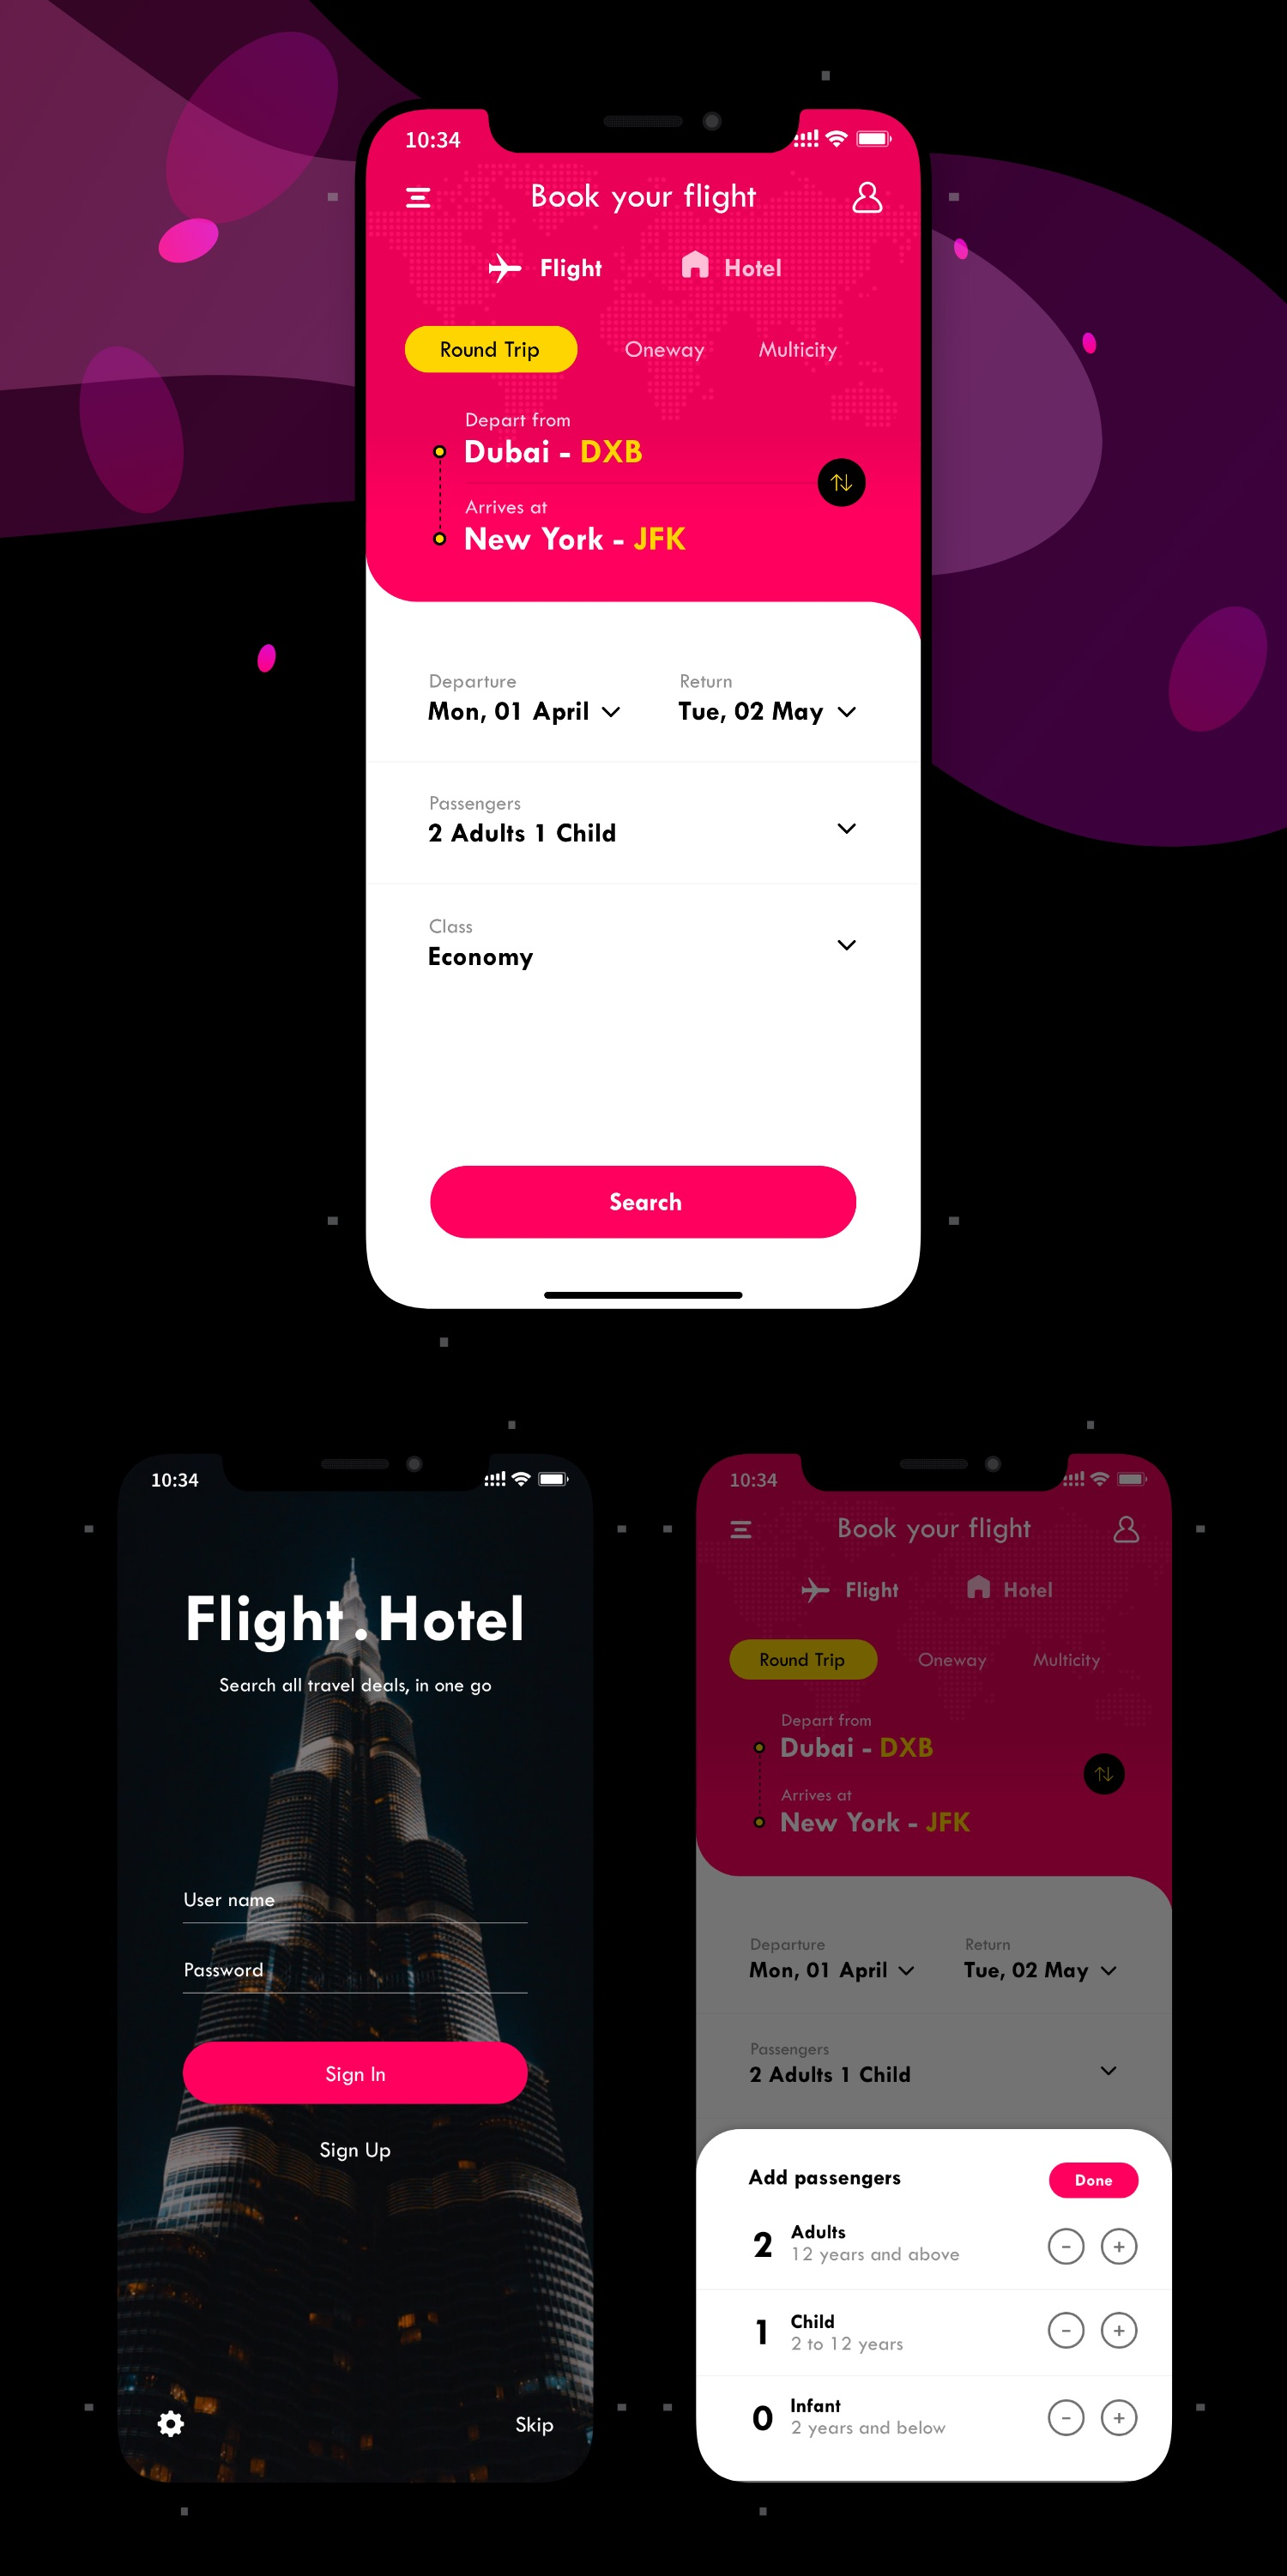 Flight Booking App UI/UX Design by www.iamrakesh.com | Life and Travel by Rakesh | UI/UX Designer | Vlogger